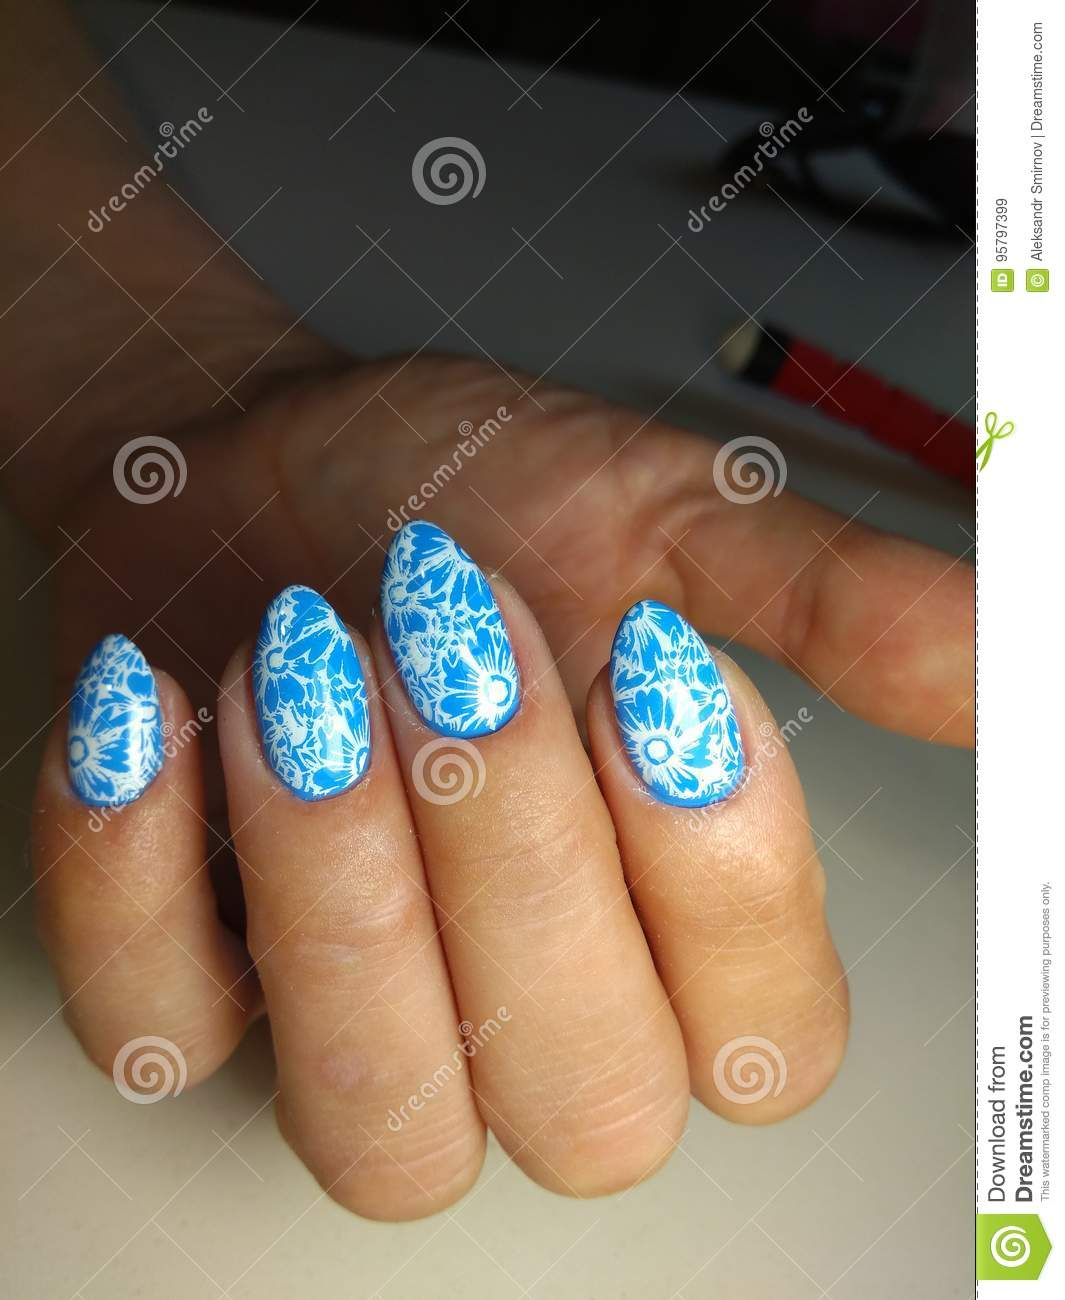 Marine Manicure Nail Design Stock Image Image Of Fashion Glamour